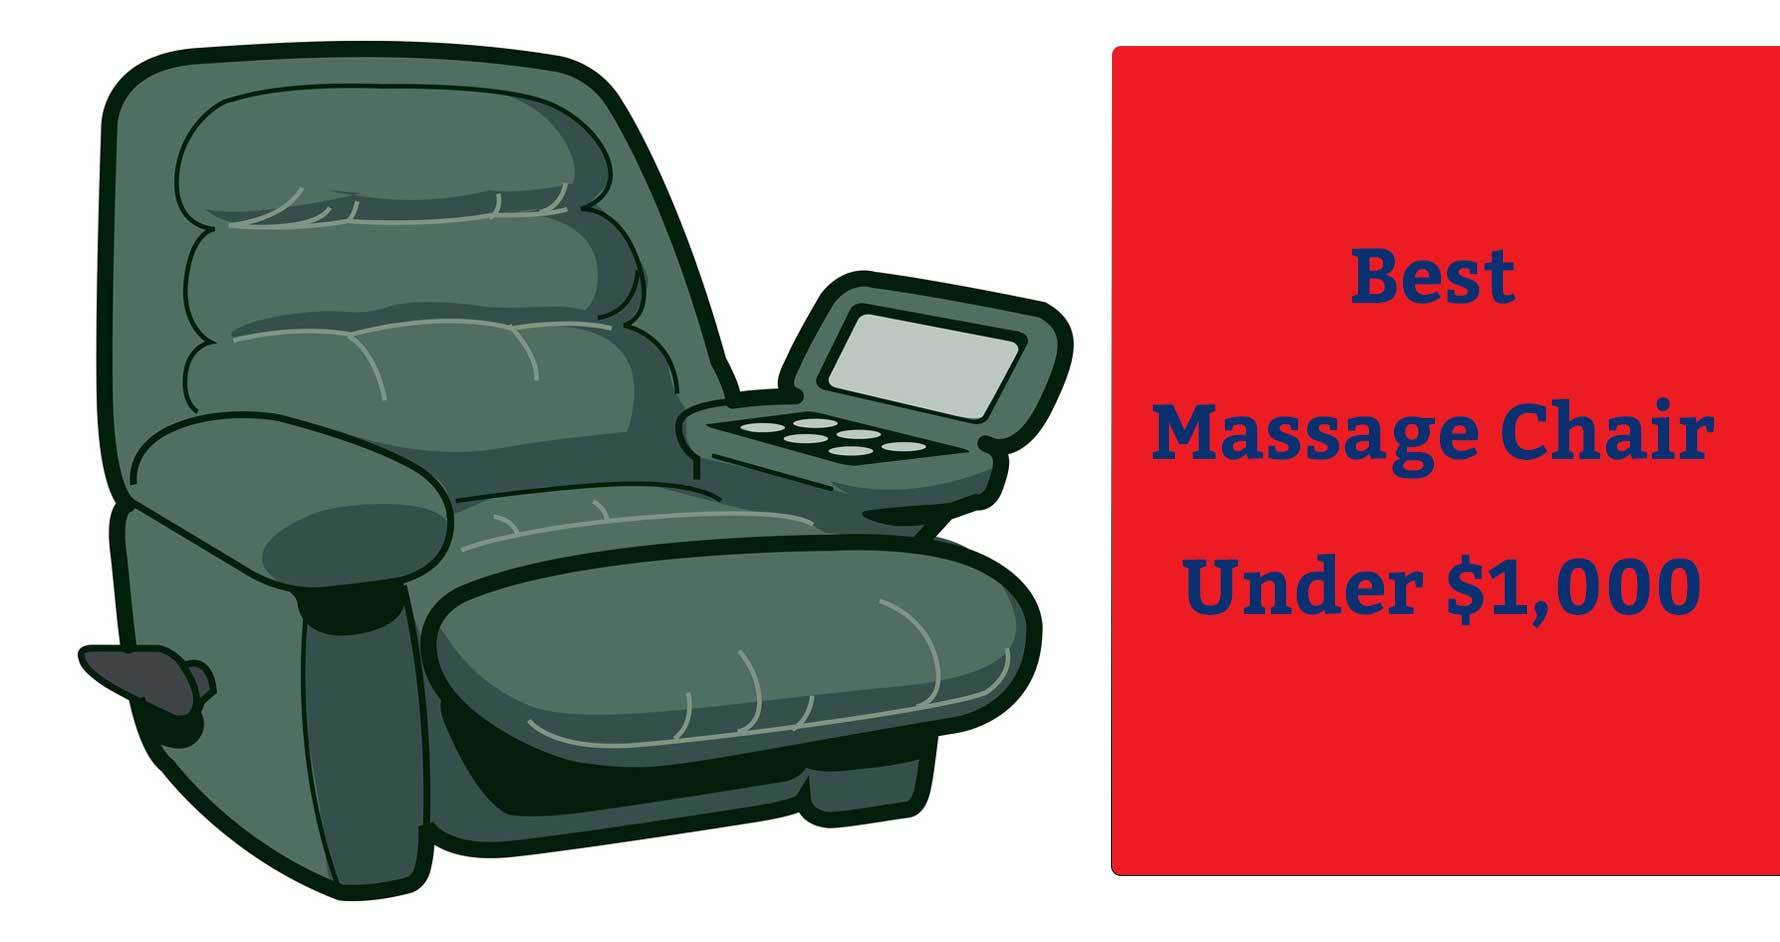 Best Massage Chair Under $1,000